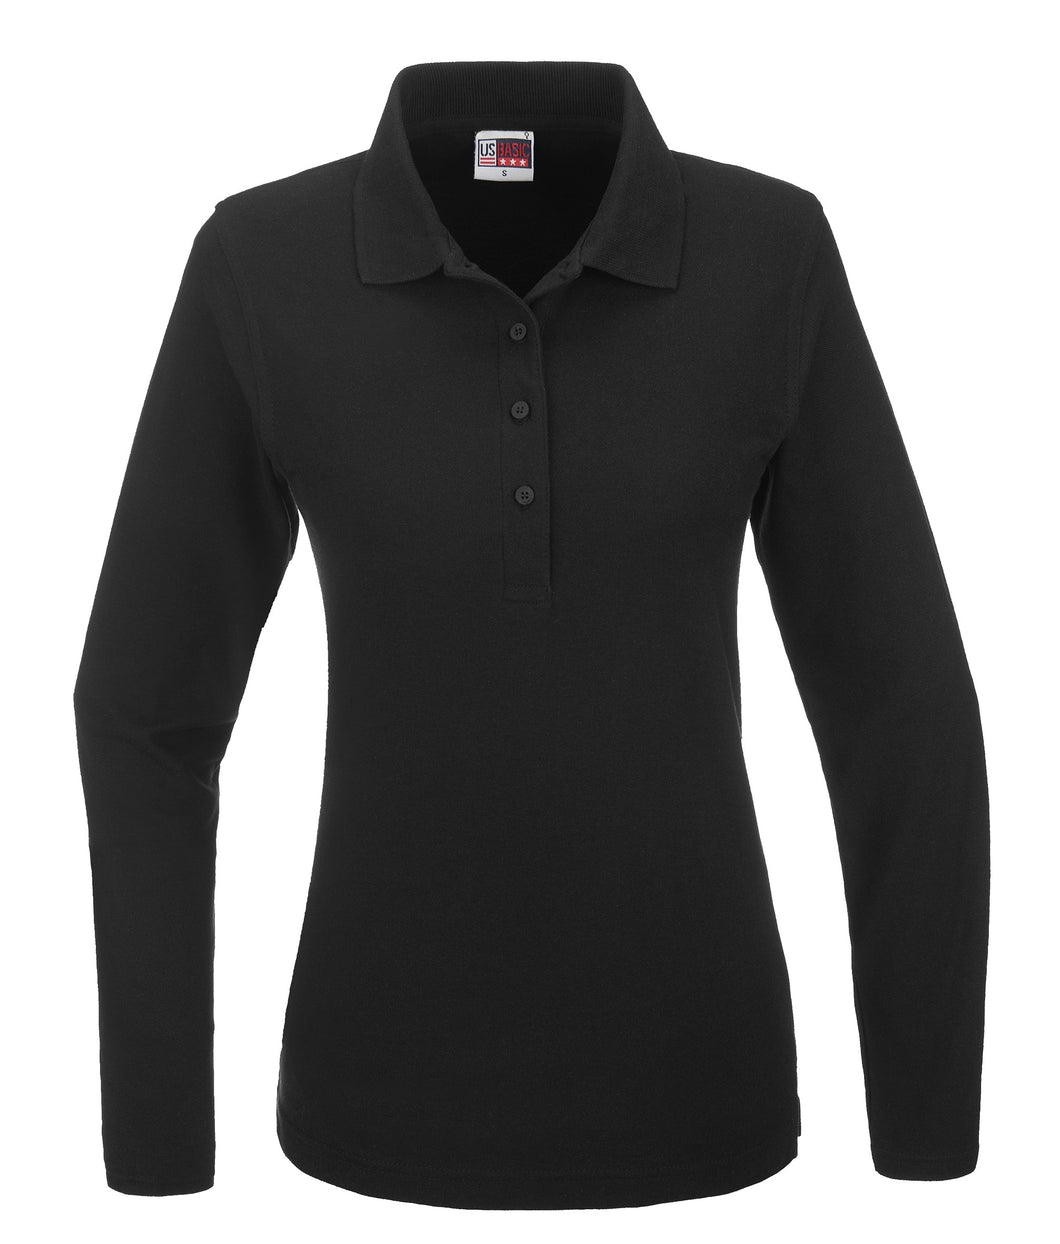 Personalised longsleeve Golf shirt - LADIES